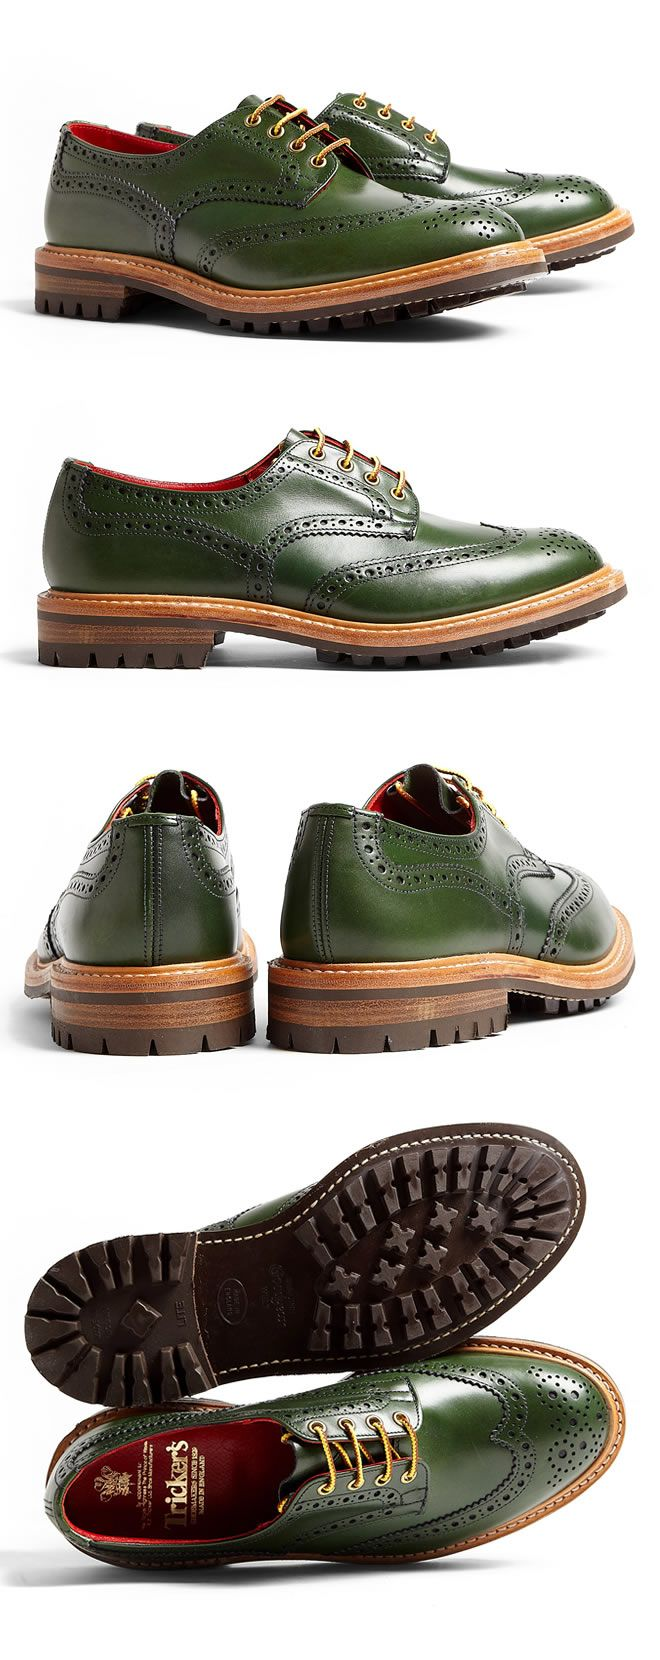 DON ⋈ PABLO: Guía de Estilo para Caballeros | #donpabloec | Tricker's Green Commando Brogue Bourton Shoes